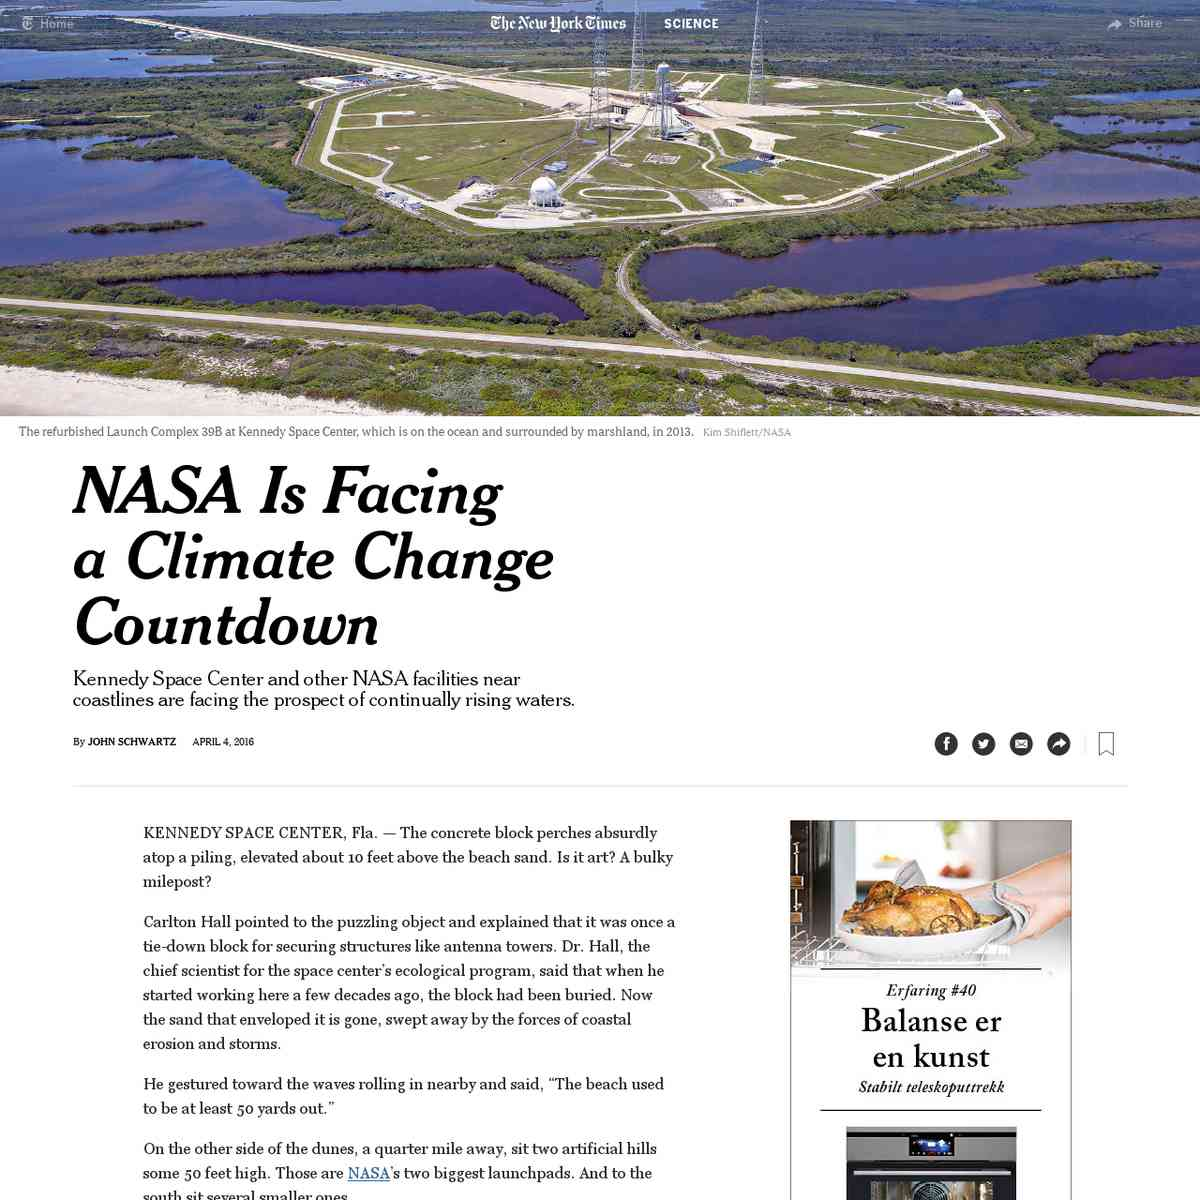 NASA Is Facing a Climate Change Countdown